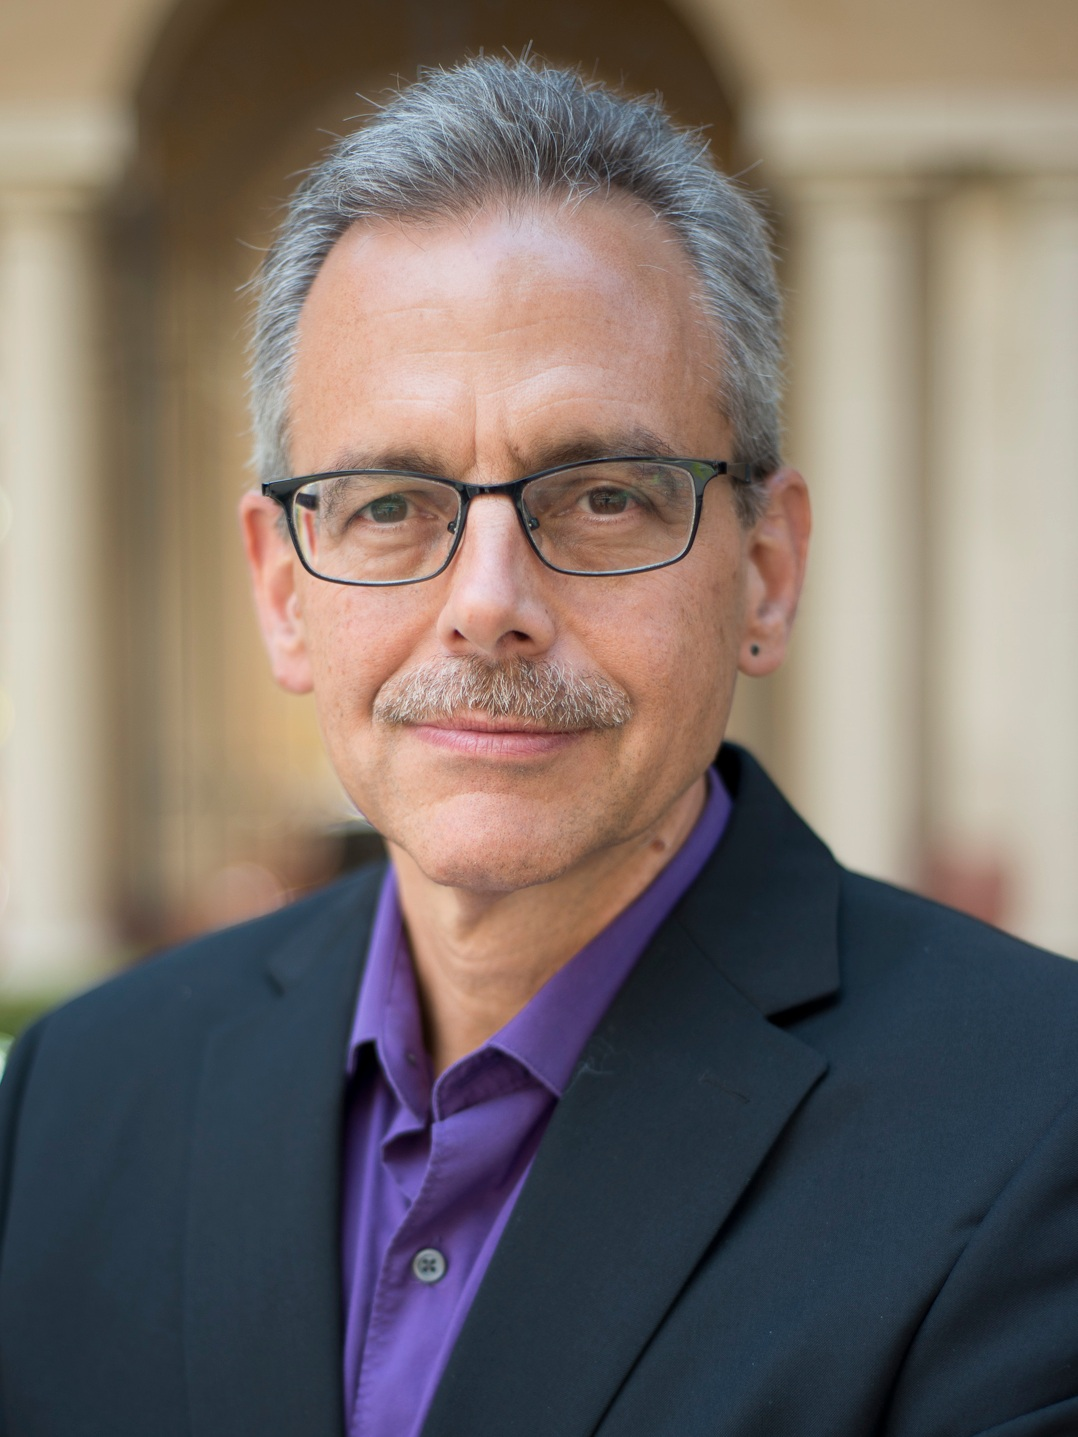 Dr. Manuel Pastor - Distinguished Professor, Sociology and American Studies & Ethnicity at the University of Southern California (USC)Director, USC Program for Environmental and Regional Equity (PERE)Director, USC Center for the Study of Immigrant Integration (CSII)Twitter: @Prof_MPastor